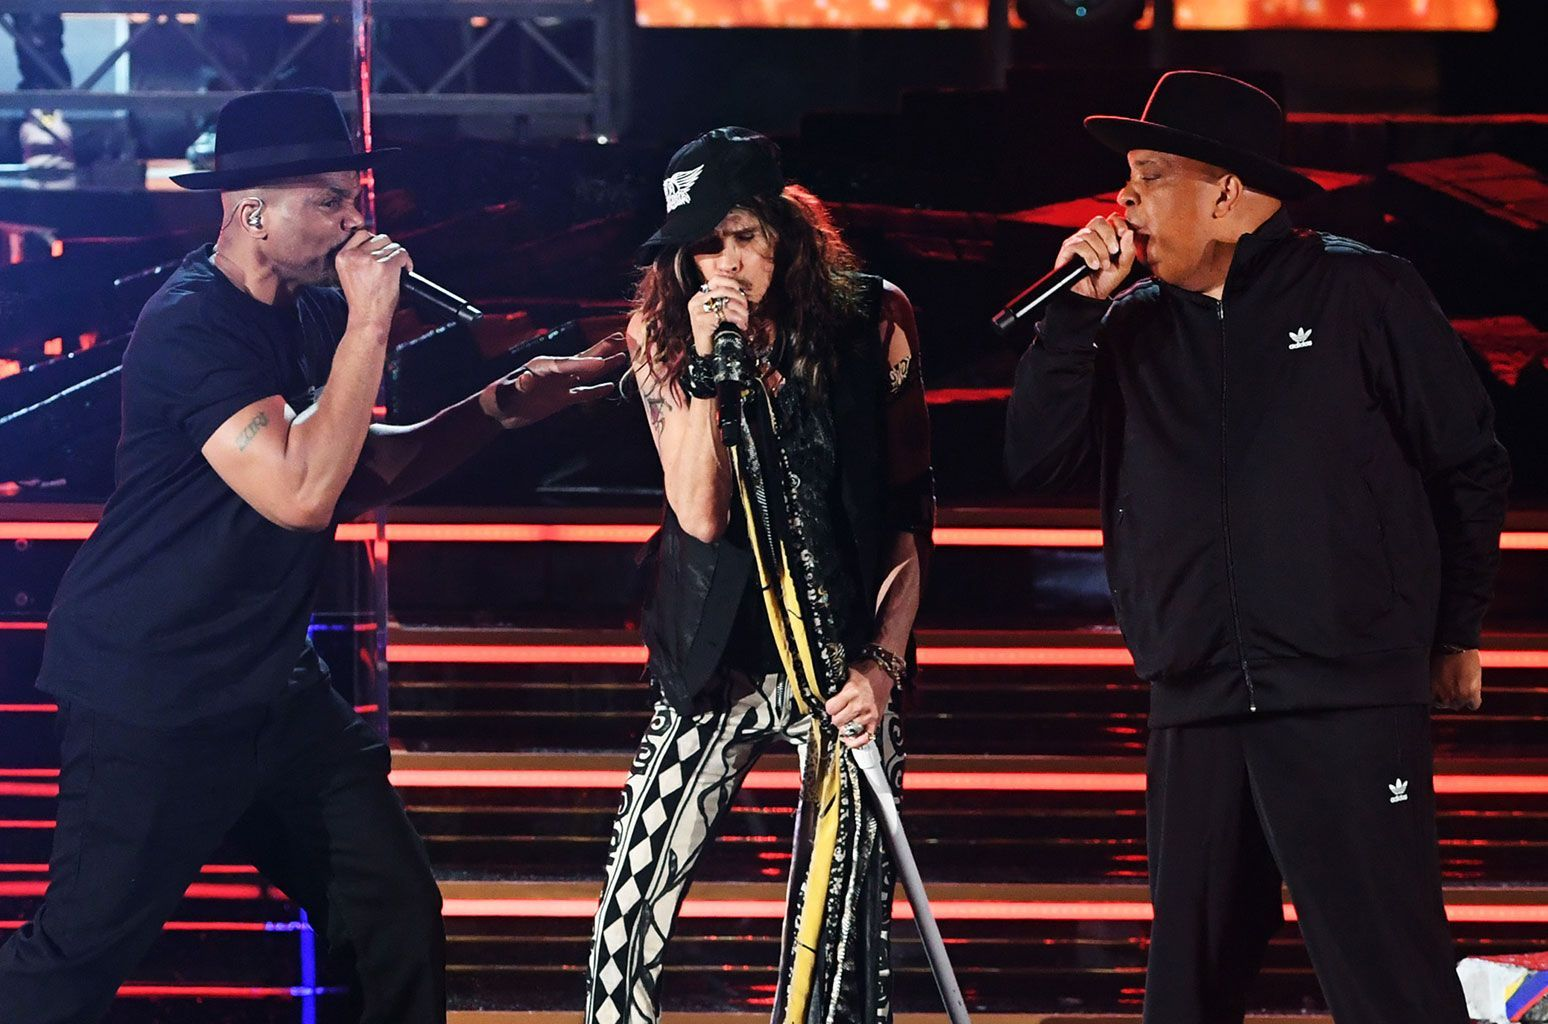 Tbt To Our Co Founder Darryl Of Run Dmc Performing The Iconic Hit Walk This Way With Rev Run And Aerosmith At The Grammys Aerosmith Walk This Way Run Dmc